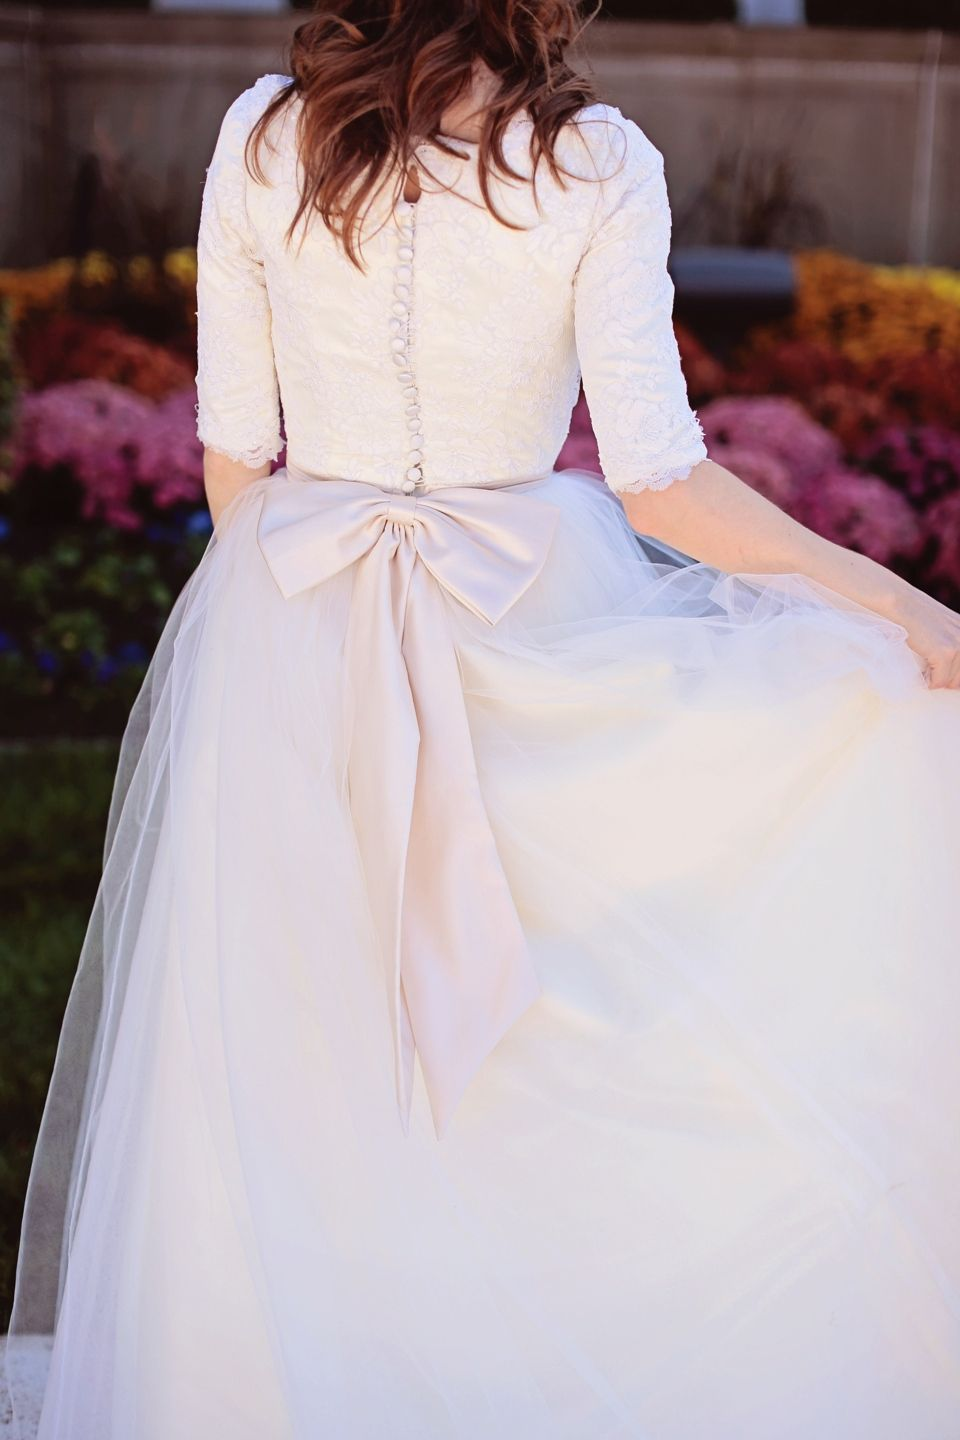 Longsleeve wedding dress from avail u co evanston ium never